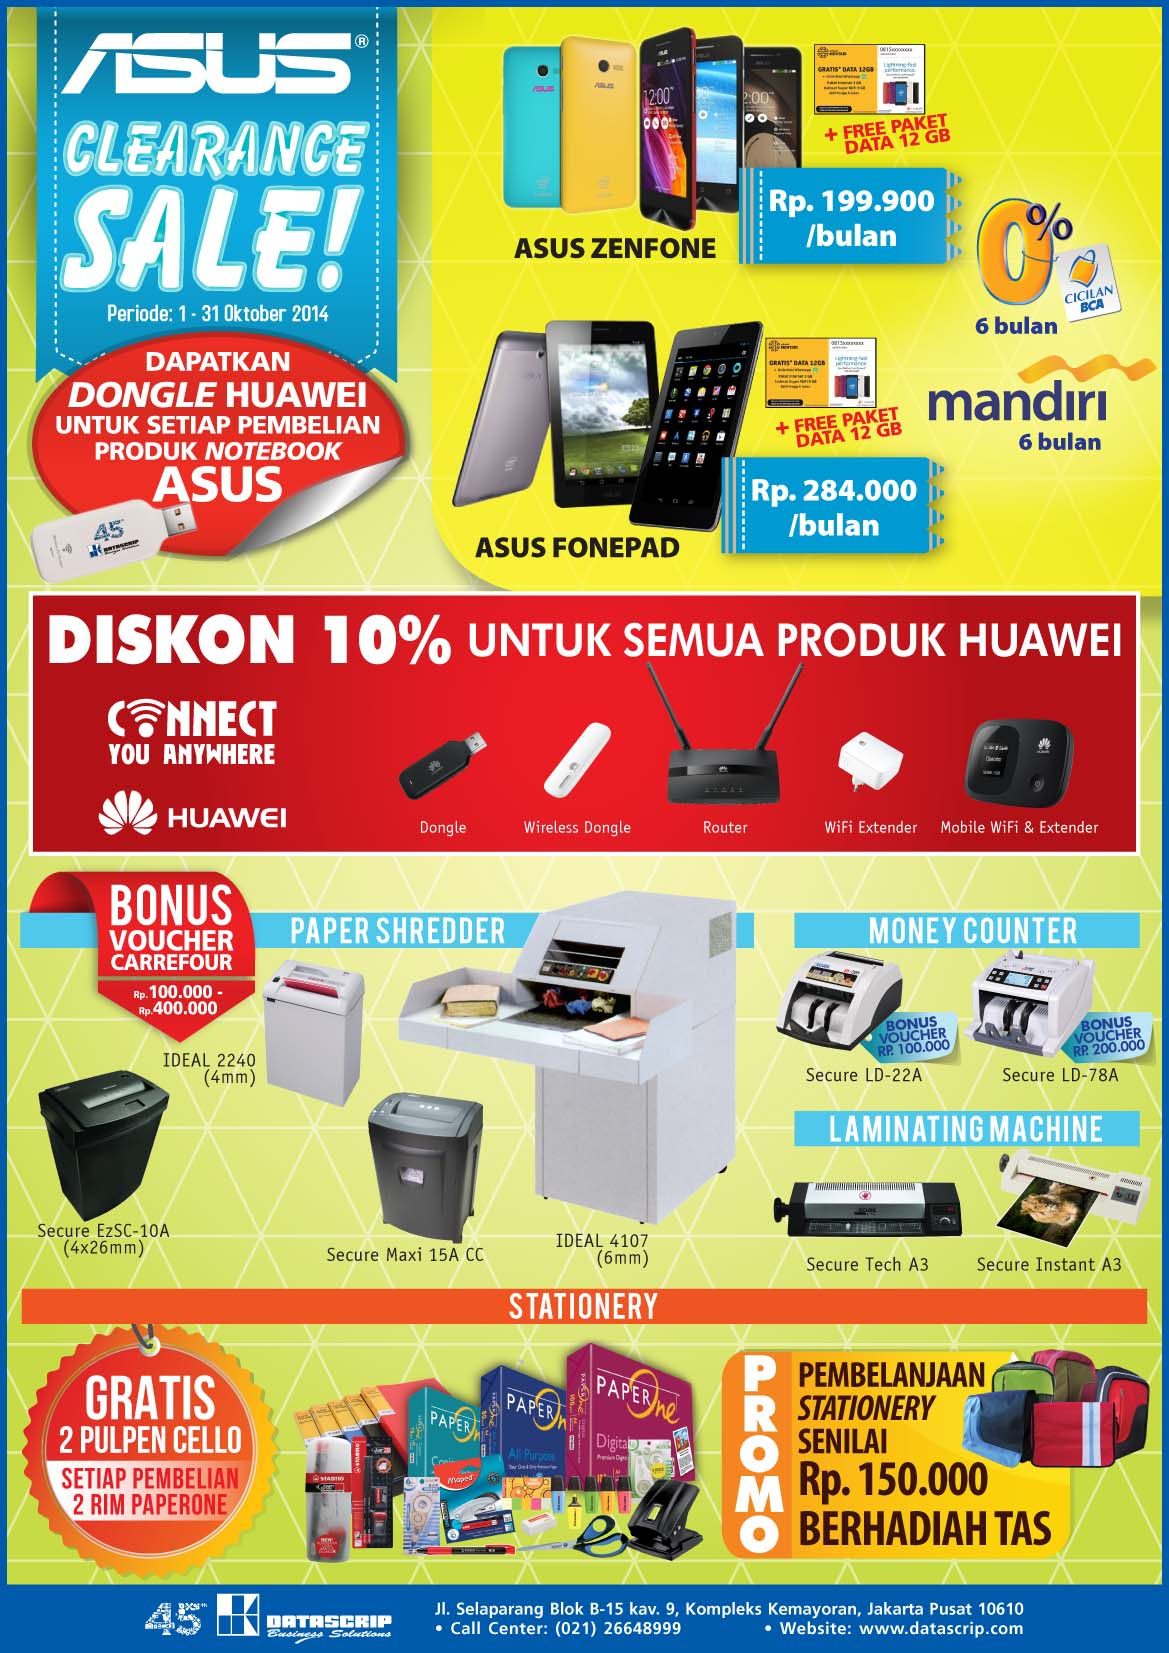 2014 09 2373 PROMO BUSINES MACHINE A3 Revisi 2